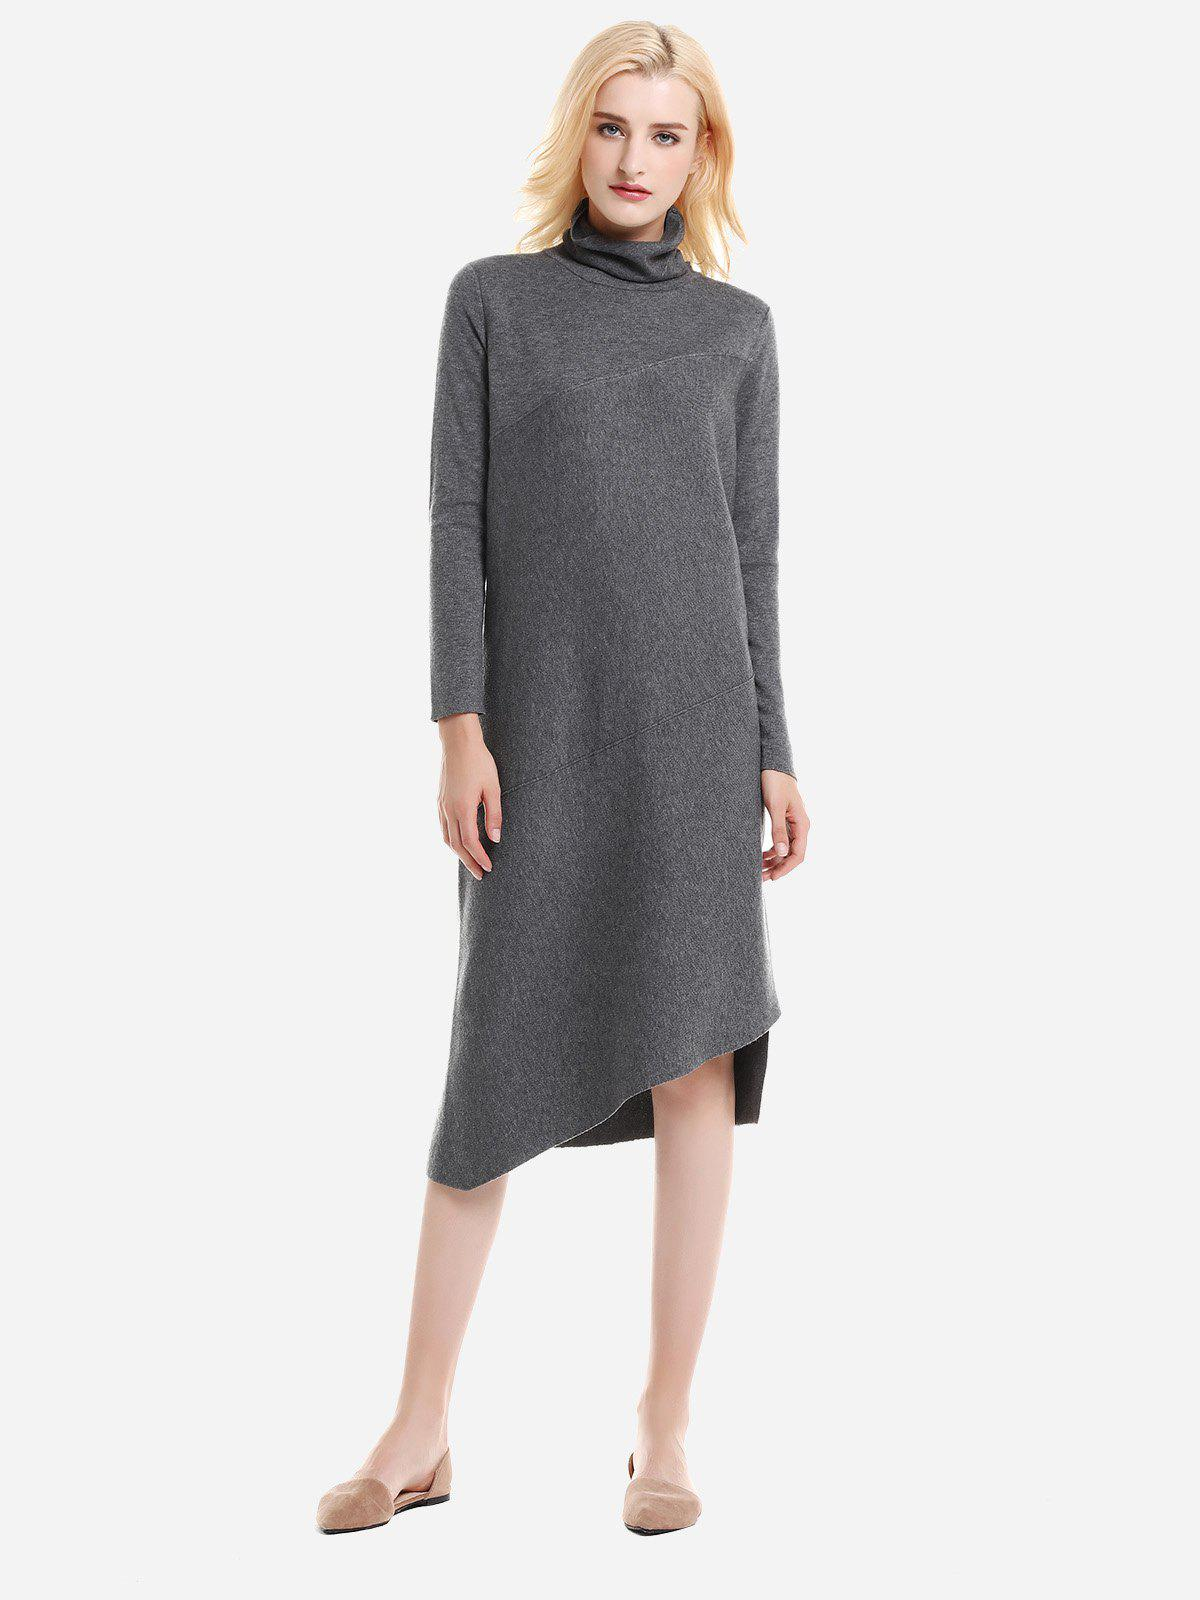 ZAN.STYLE Turtleneck Collar Dress - CHARCOAL GRAY M